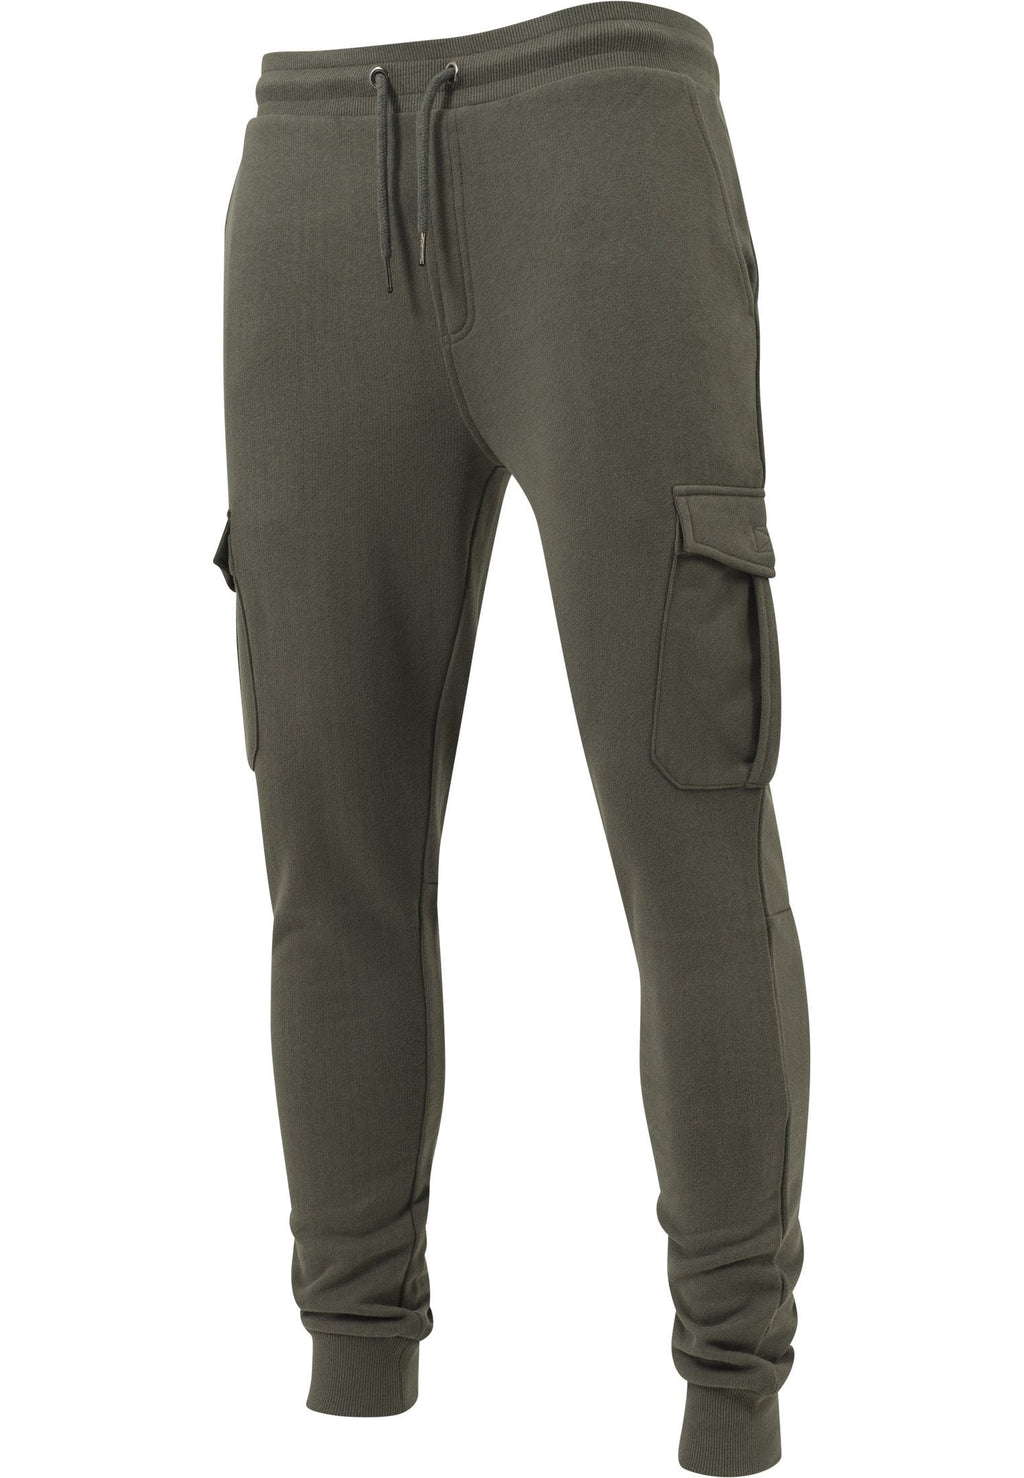 Fitted Cargo Sweatpants - Army